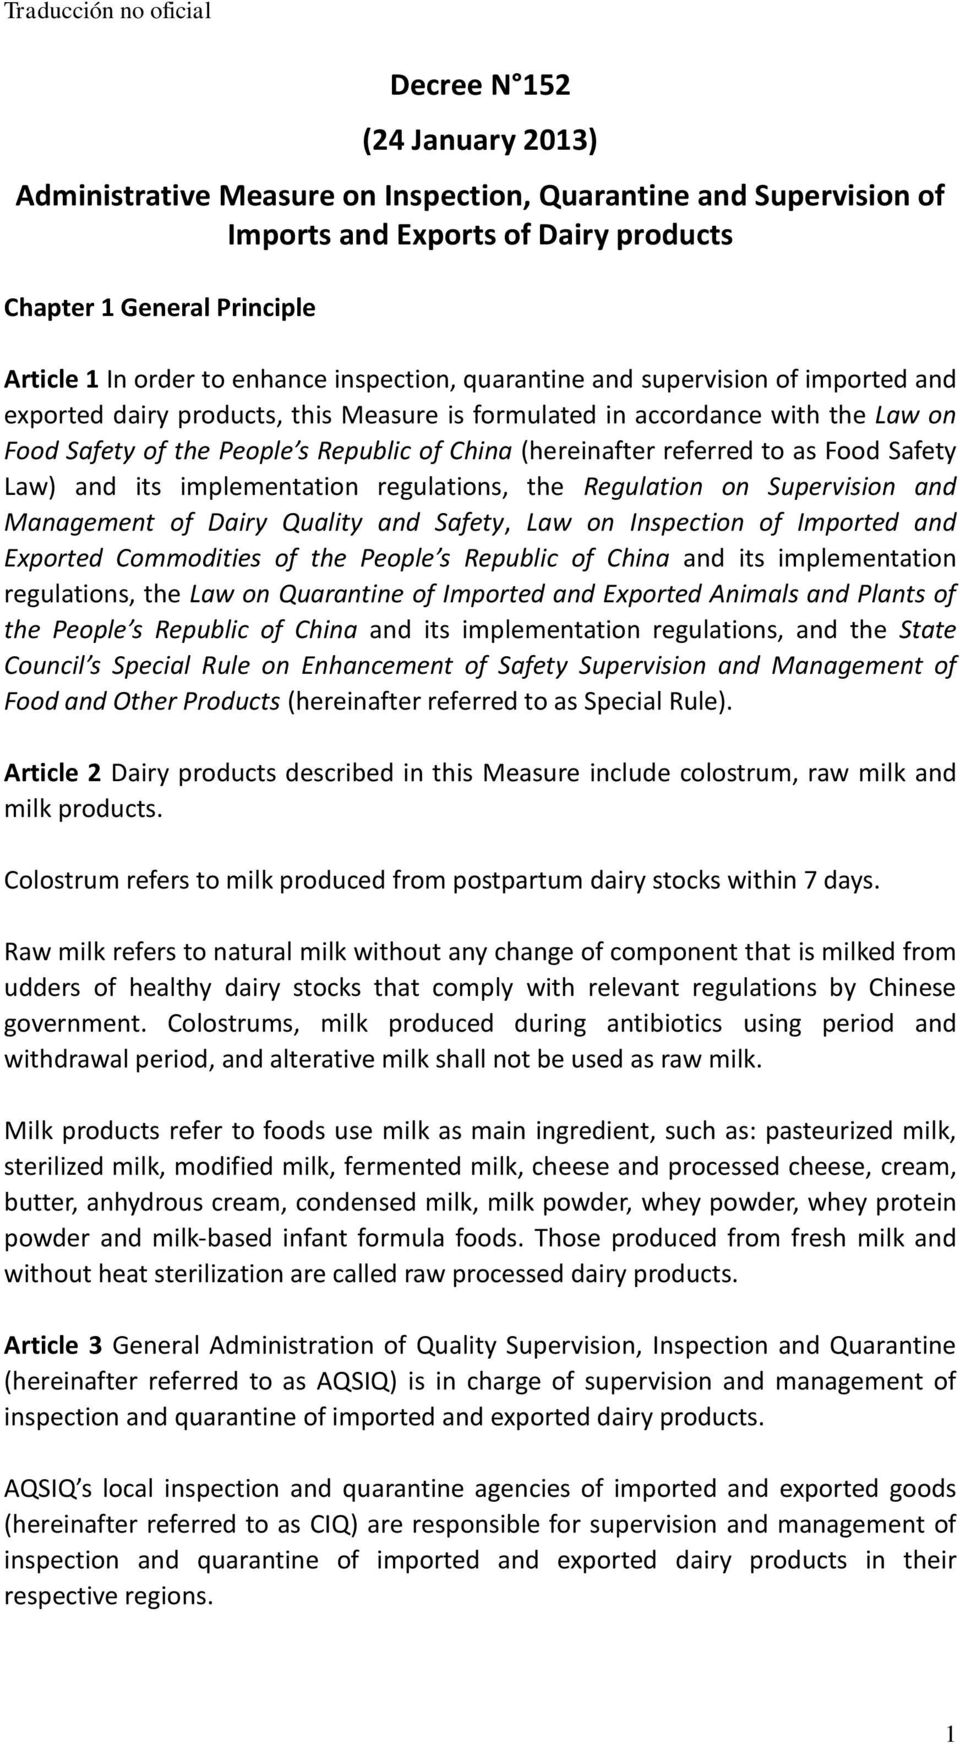 referred to as Food Safety Law) and its implementation regulations, the Regulation on Supervision and Management of Dairy Quality and Safety, Law on Inspection of Imported and Exported Commodities of